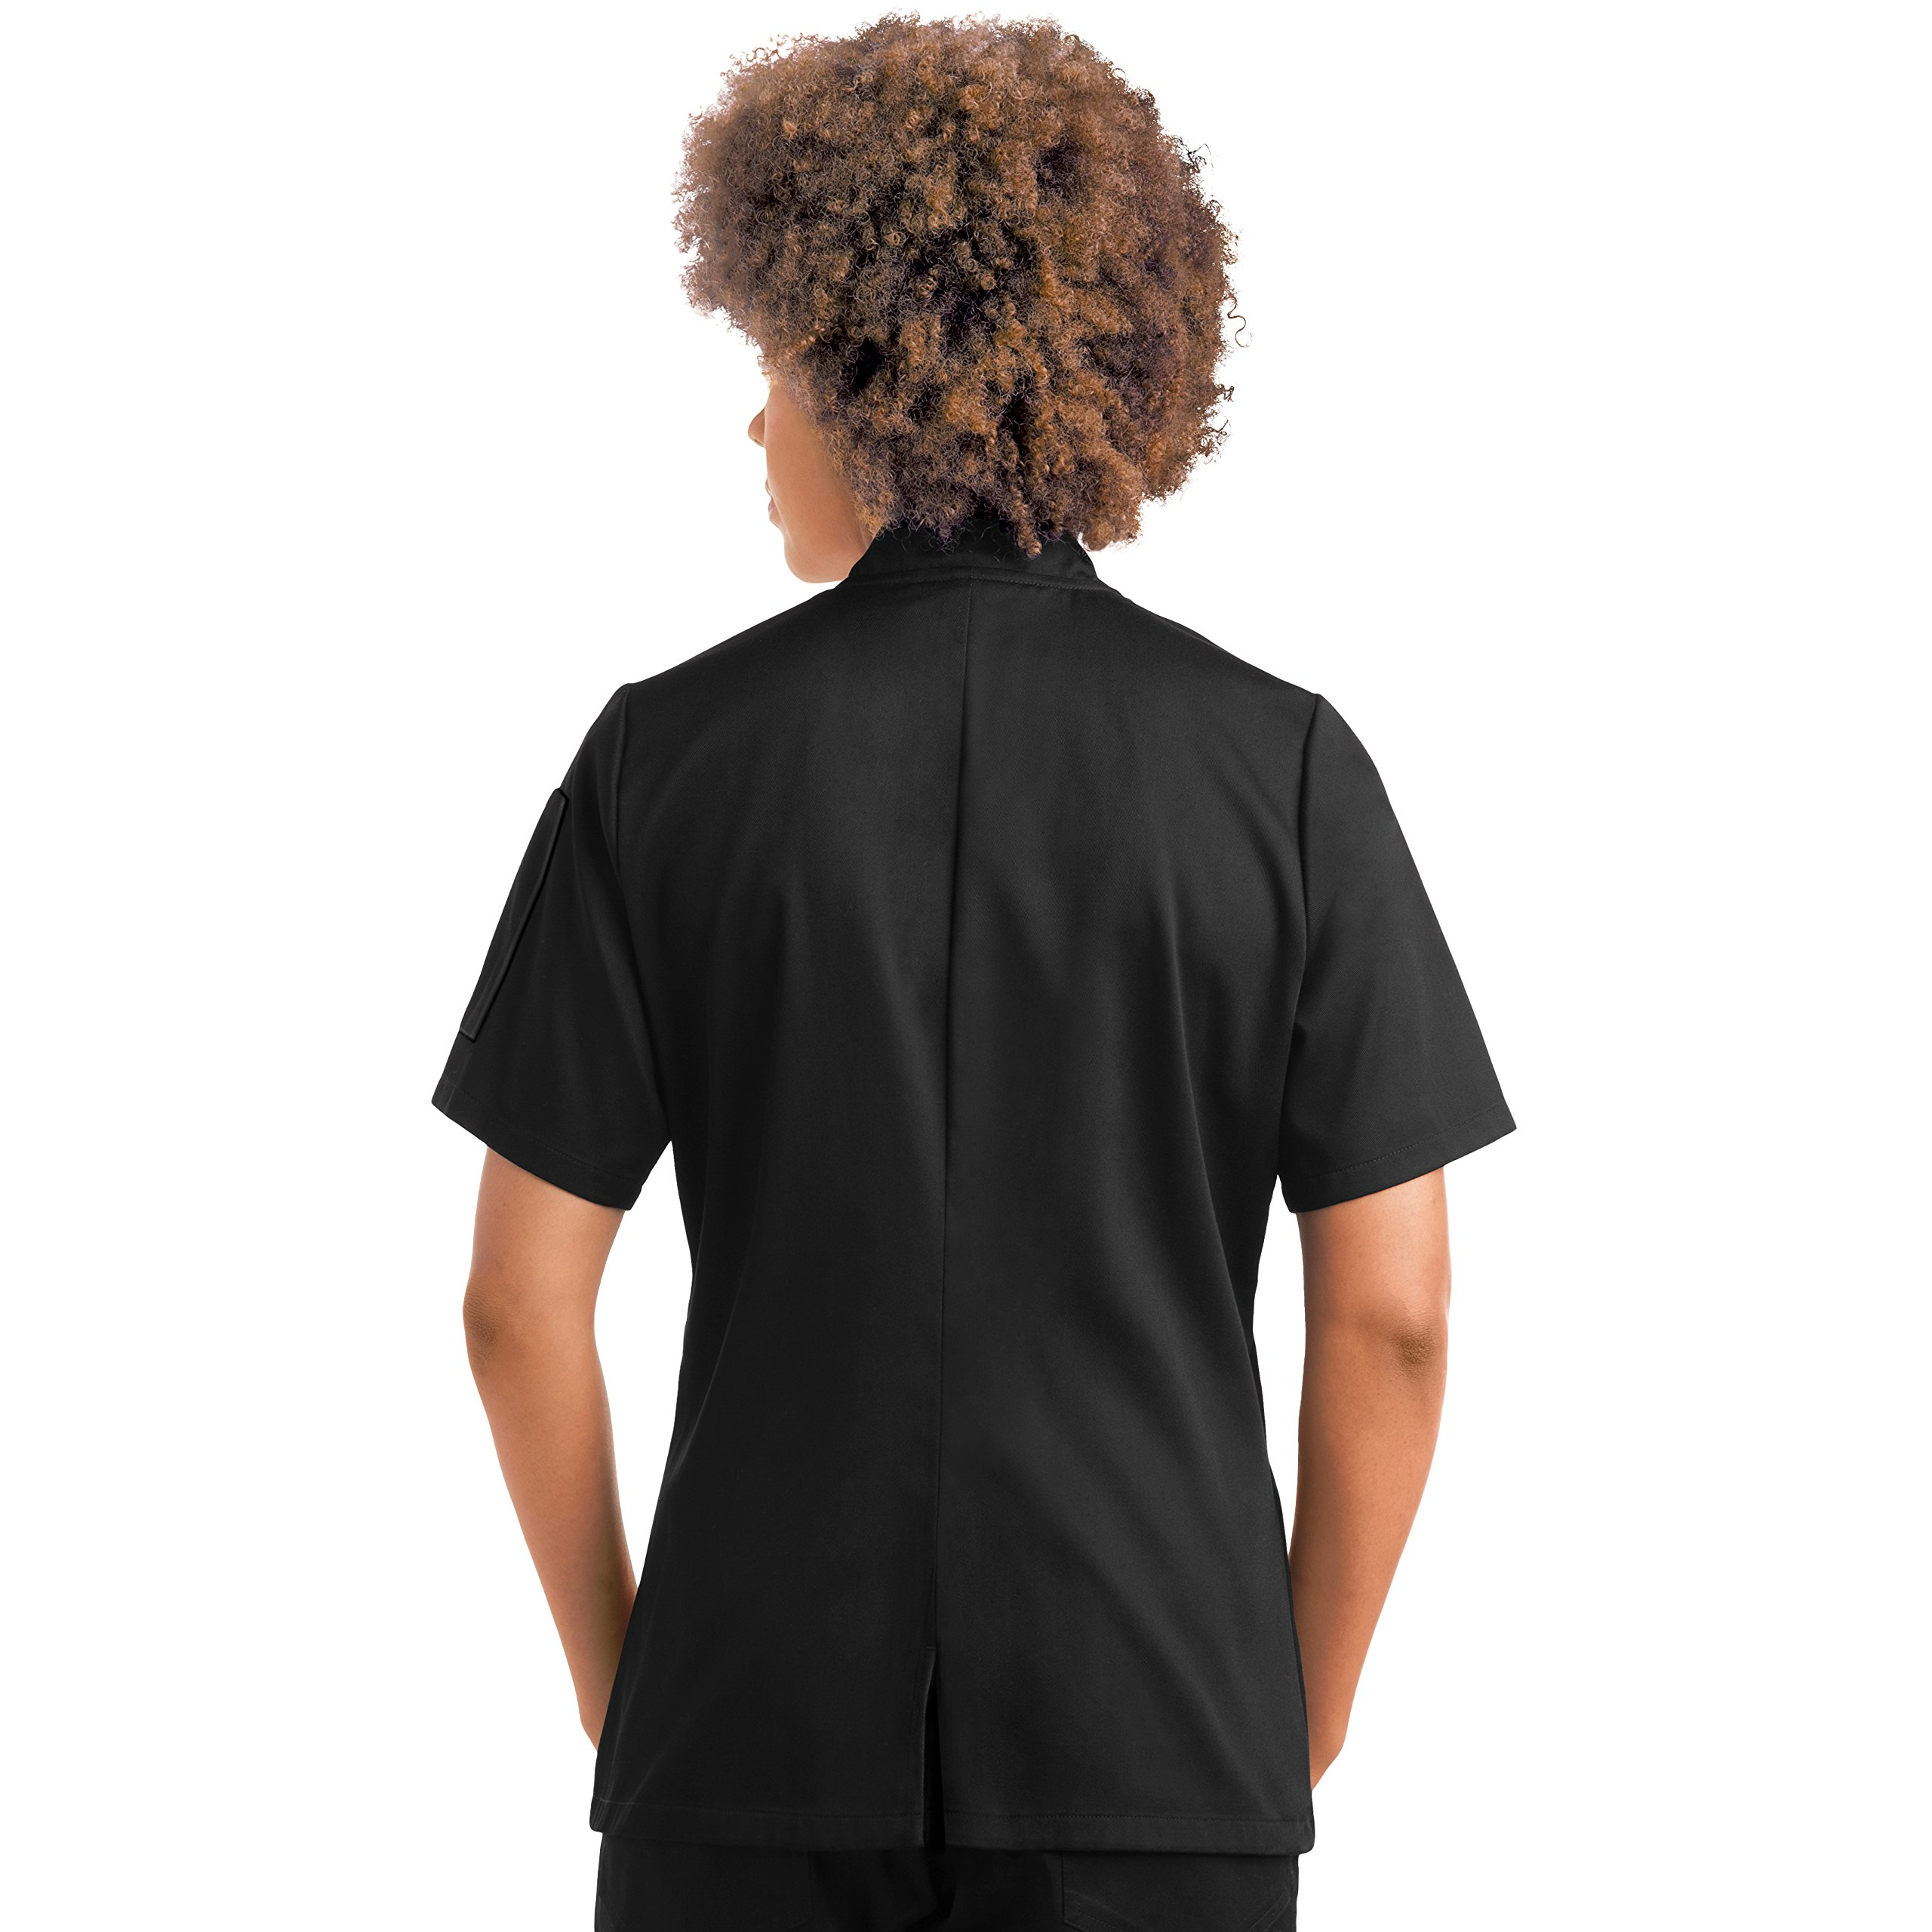 On The Line Women's Short Sleeve Chef Coat/Double Breasted/Plastic Button Reversible Front Closure (S-2X, 2 Colors) (Small, Black) by On The Line (Image #8)